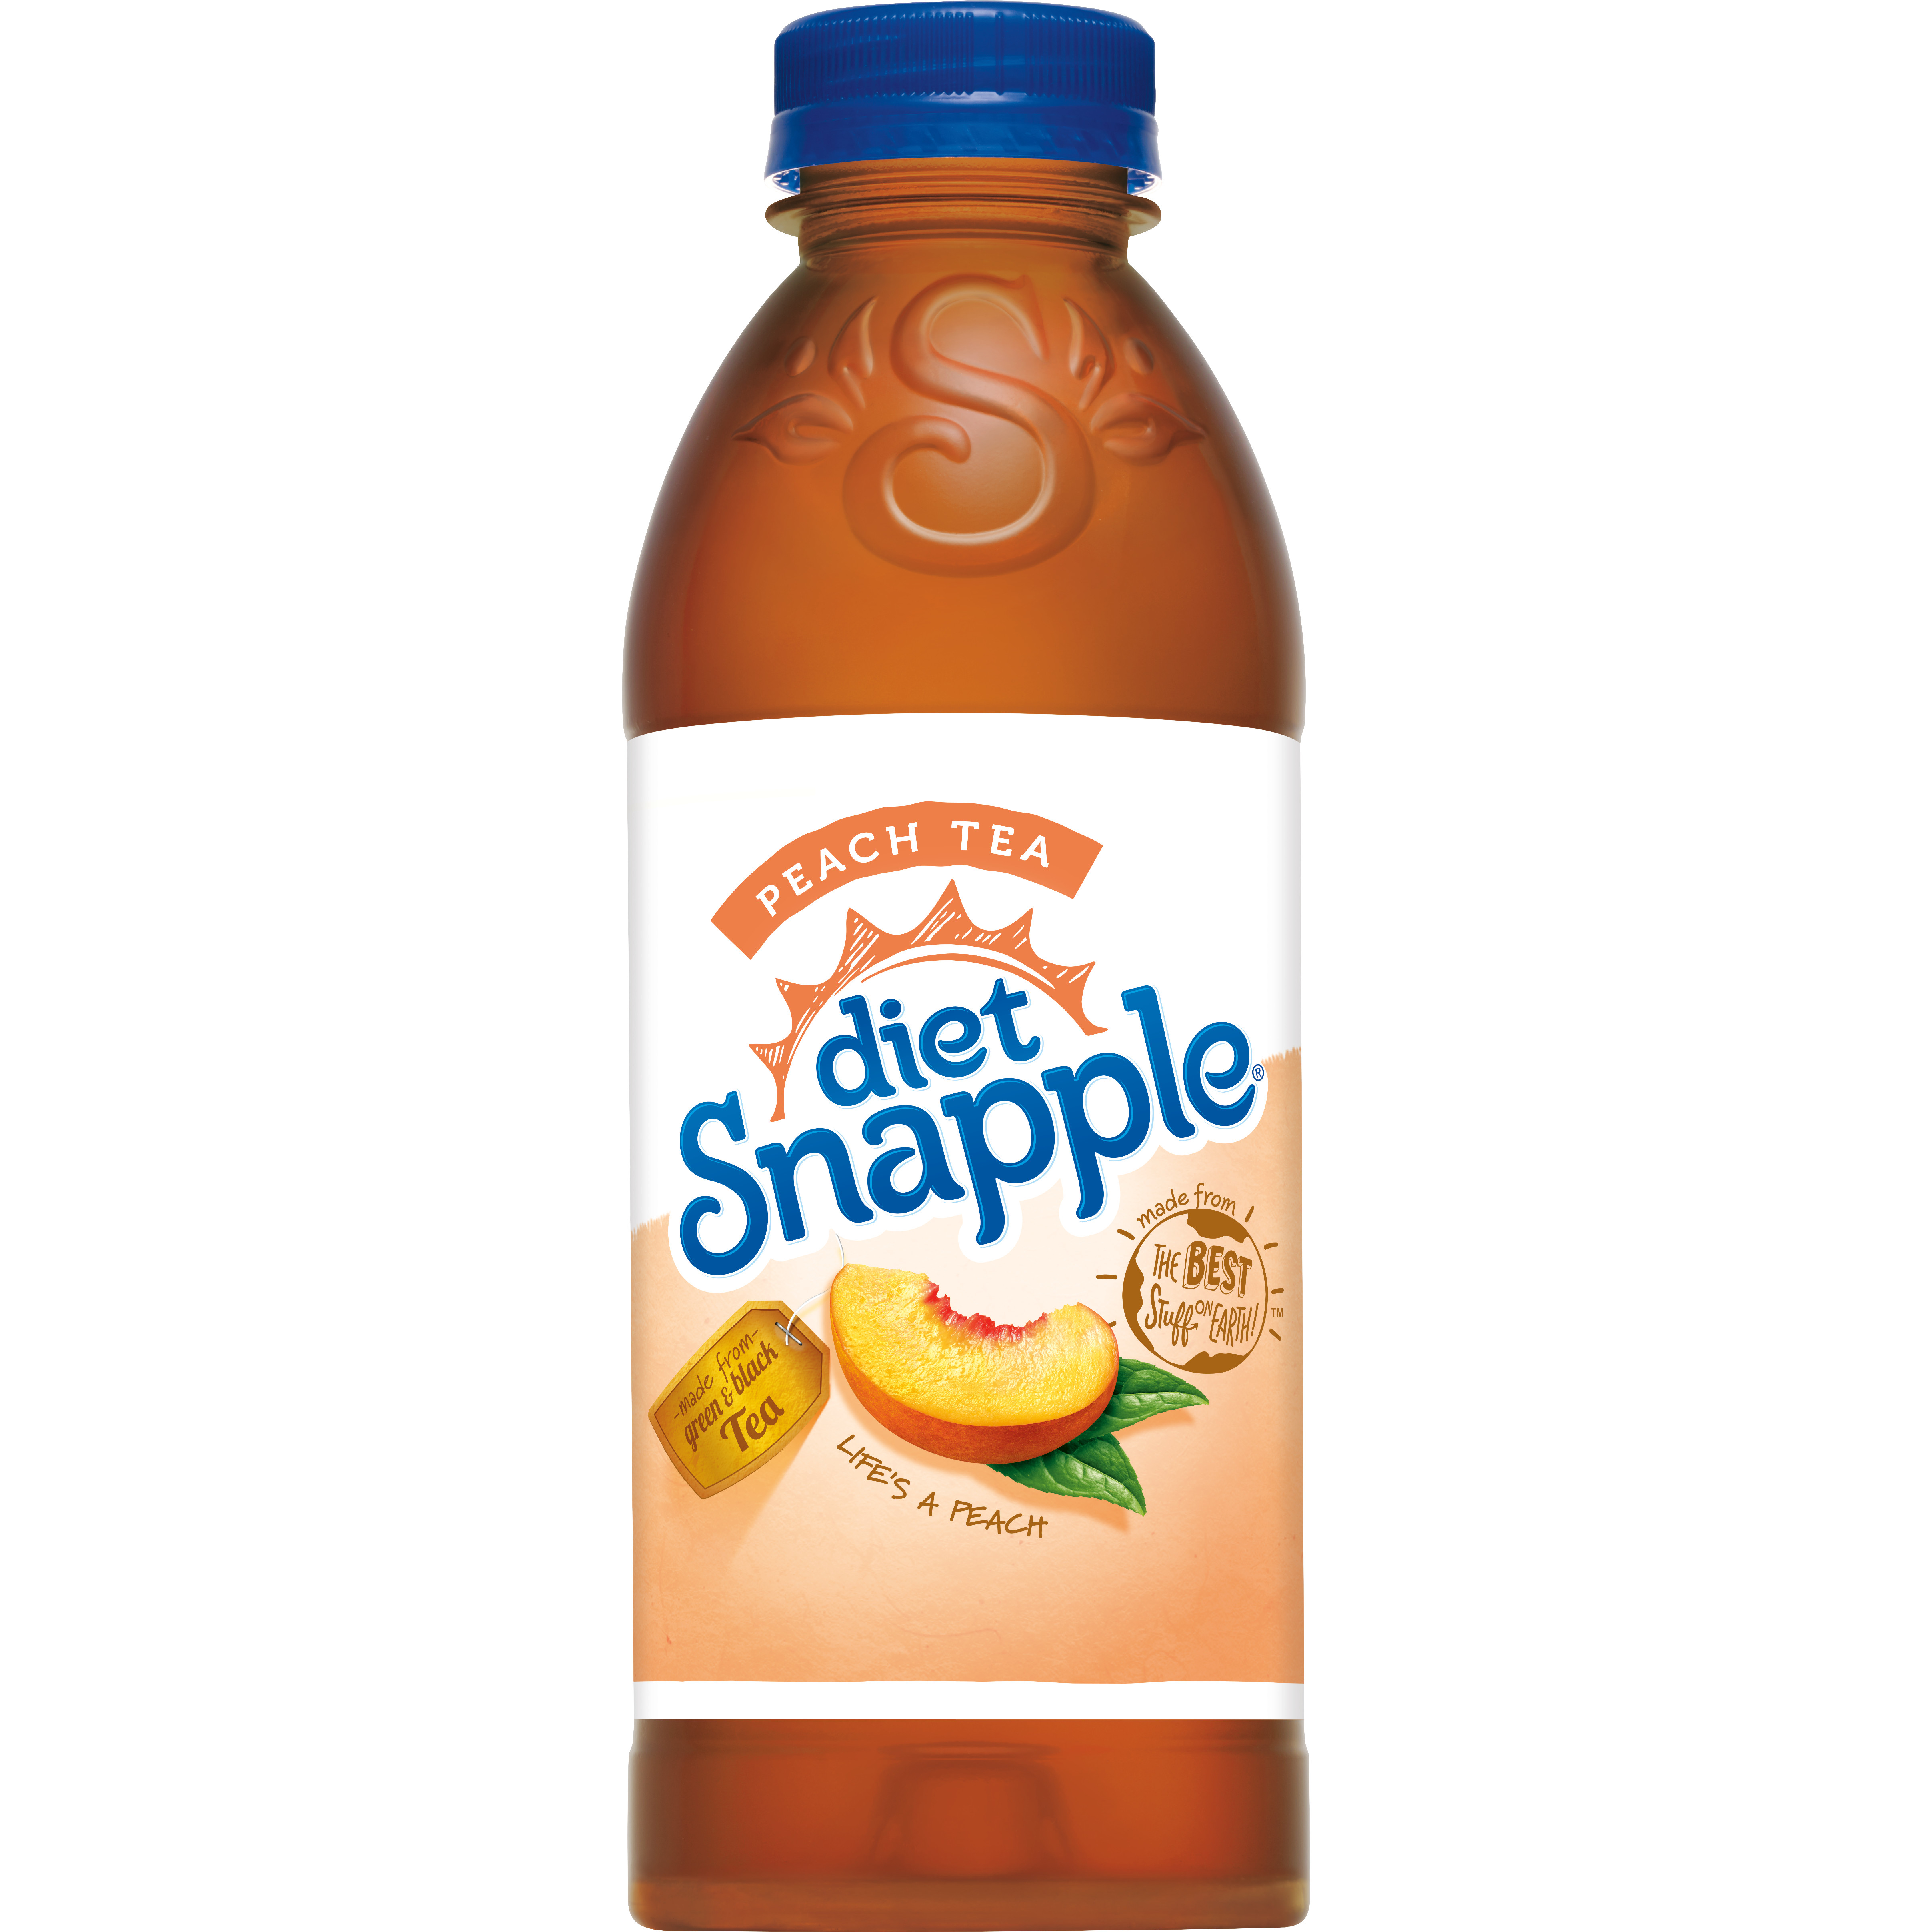 Diet Snapple Peach Tea, 20 fl oz